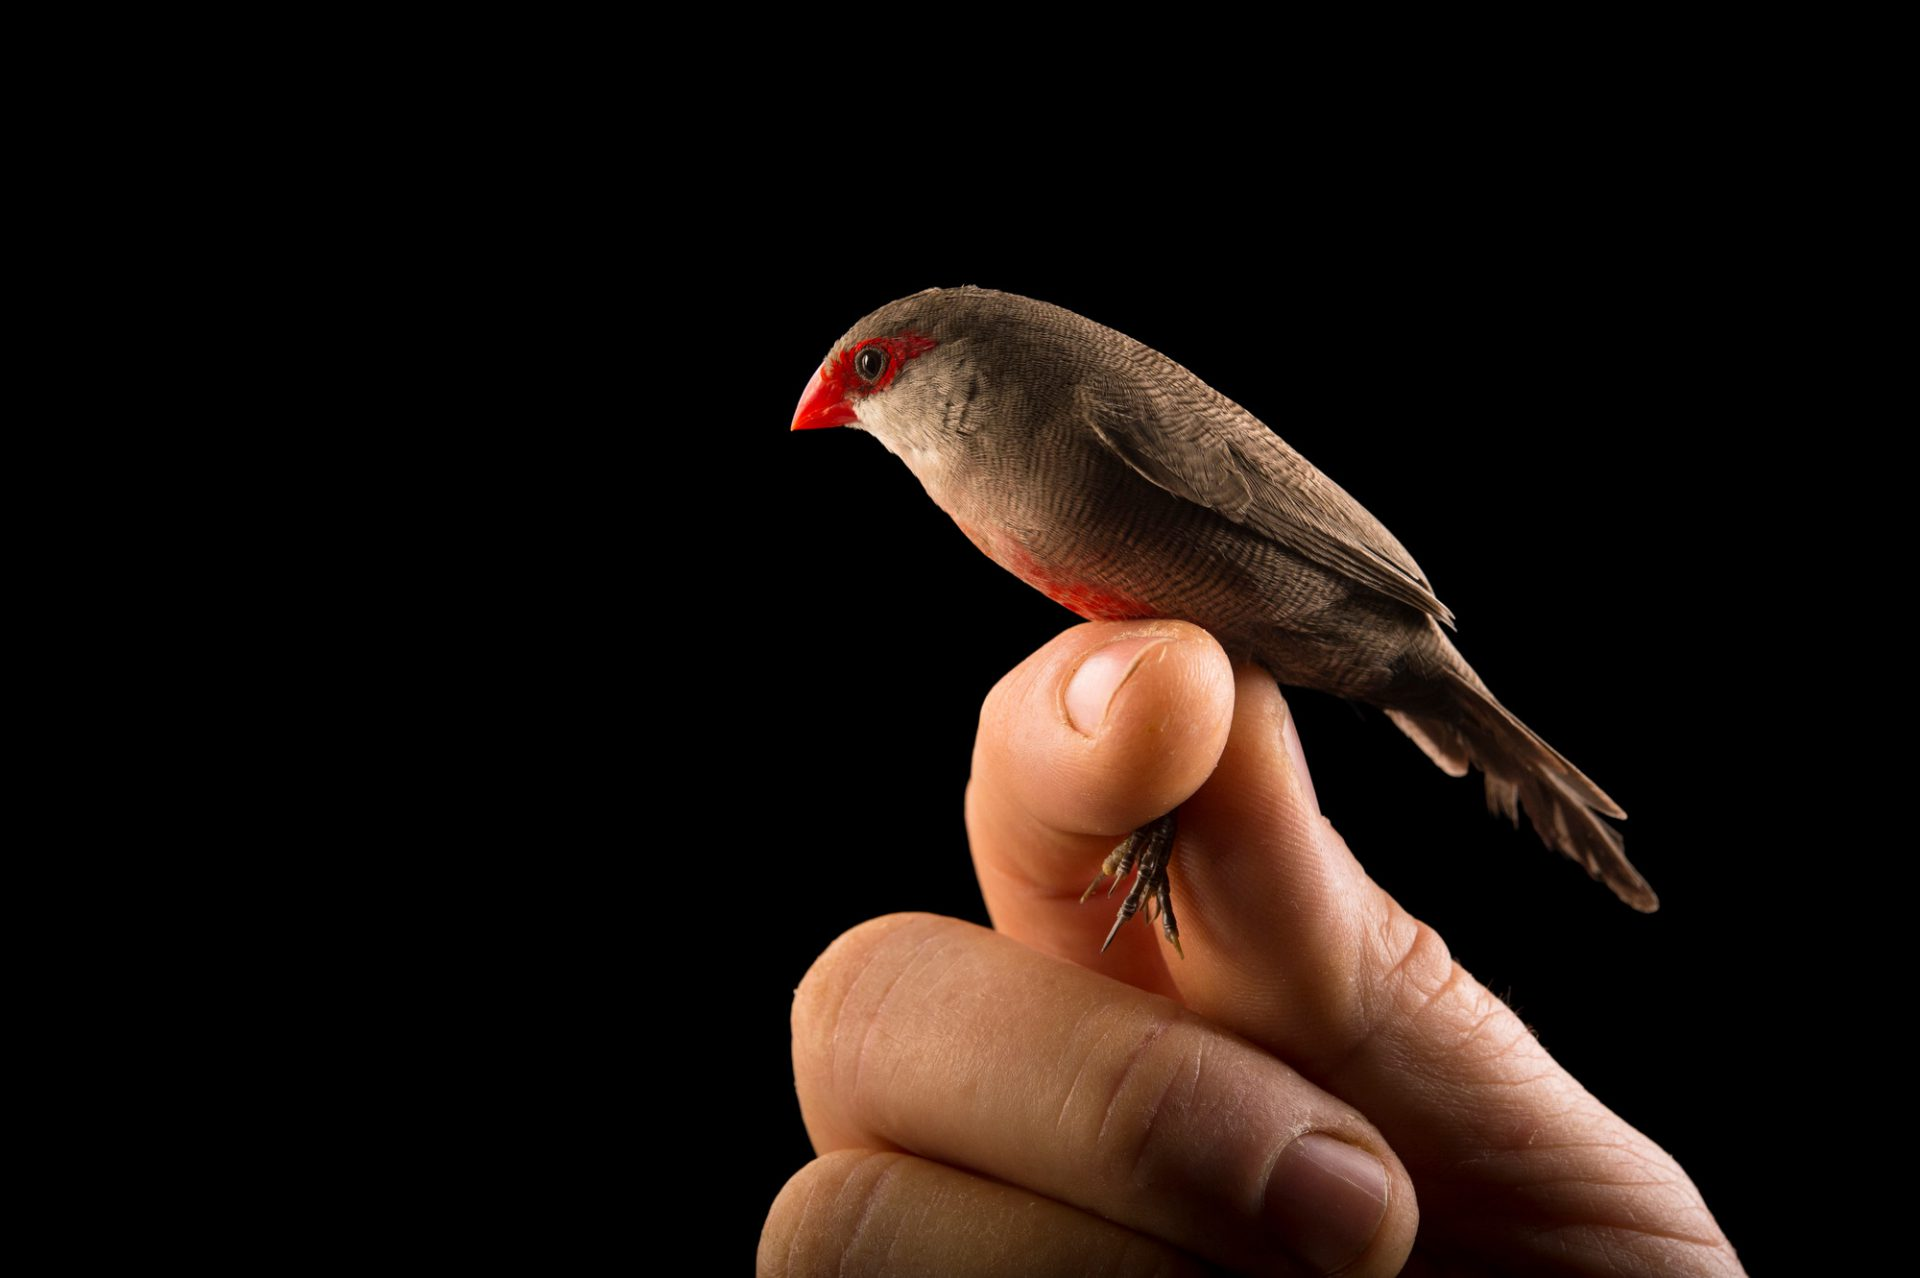 Picture of a common waxbill (Estrilda astrild) from a private collection.